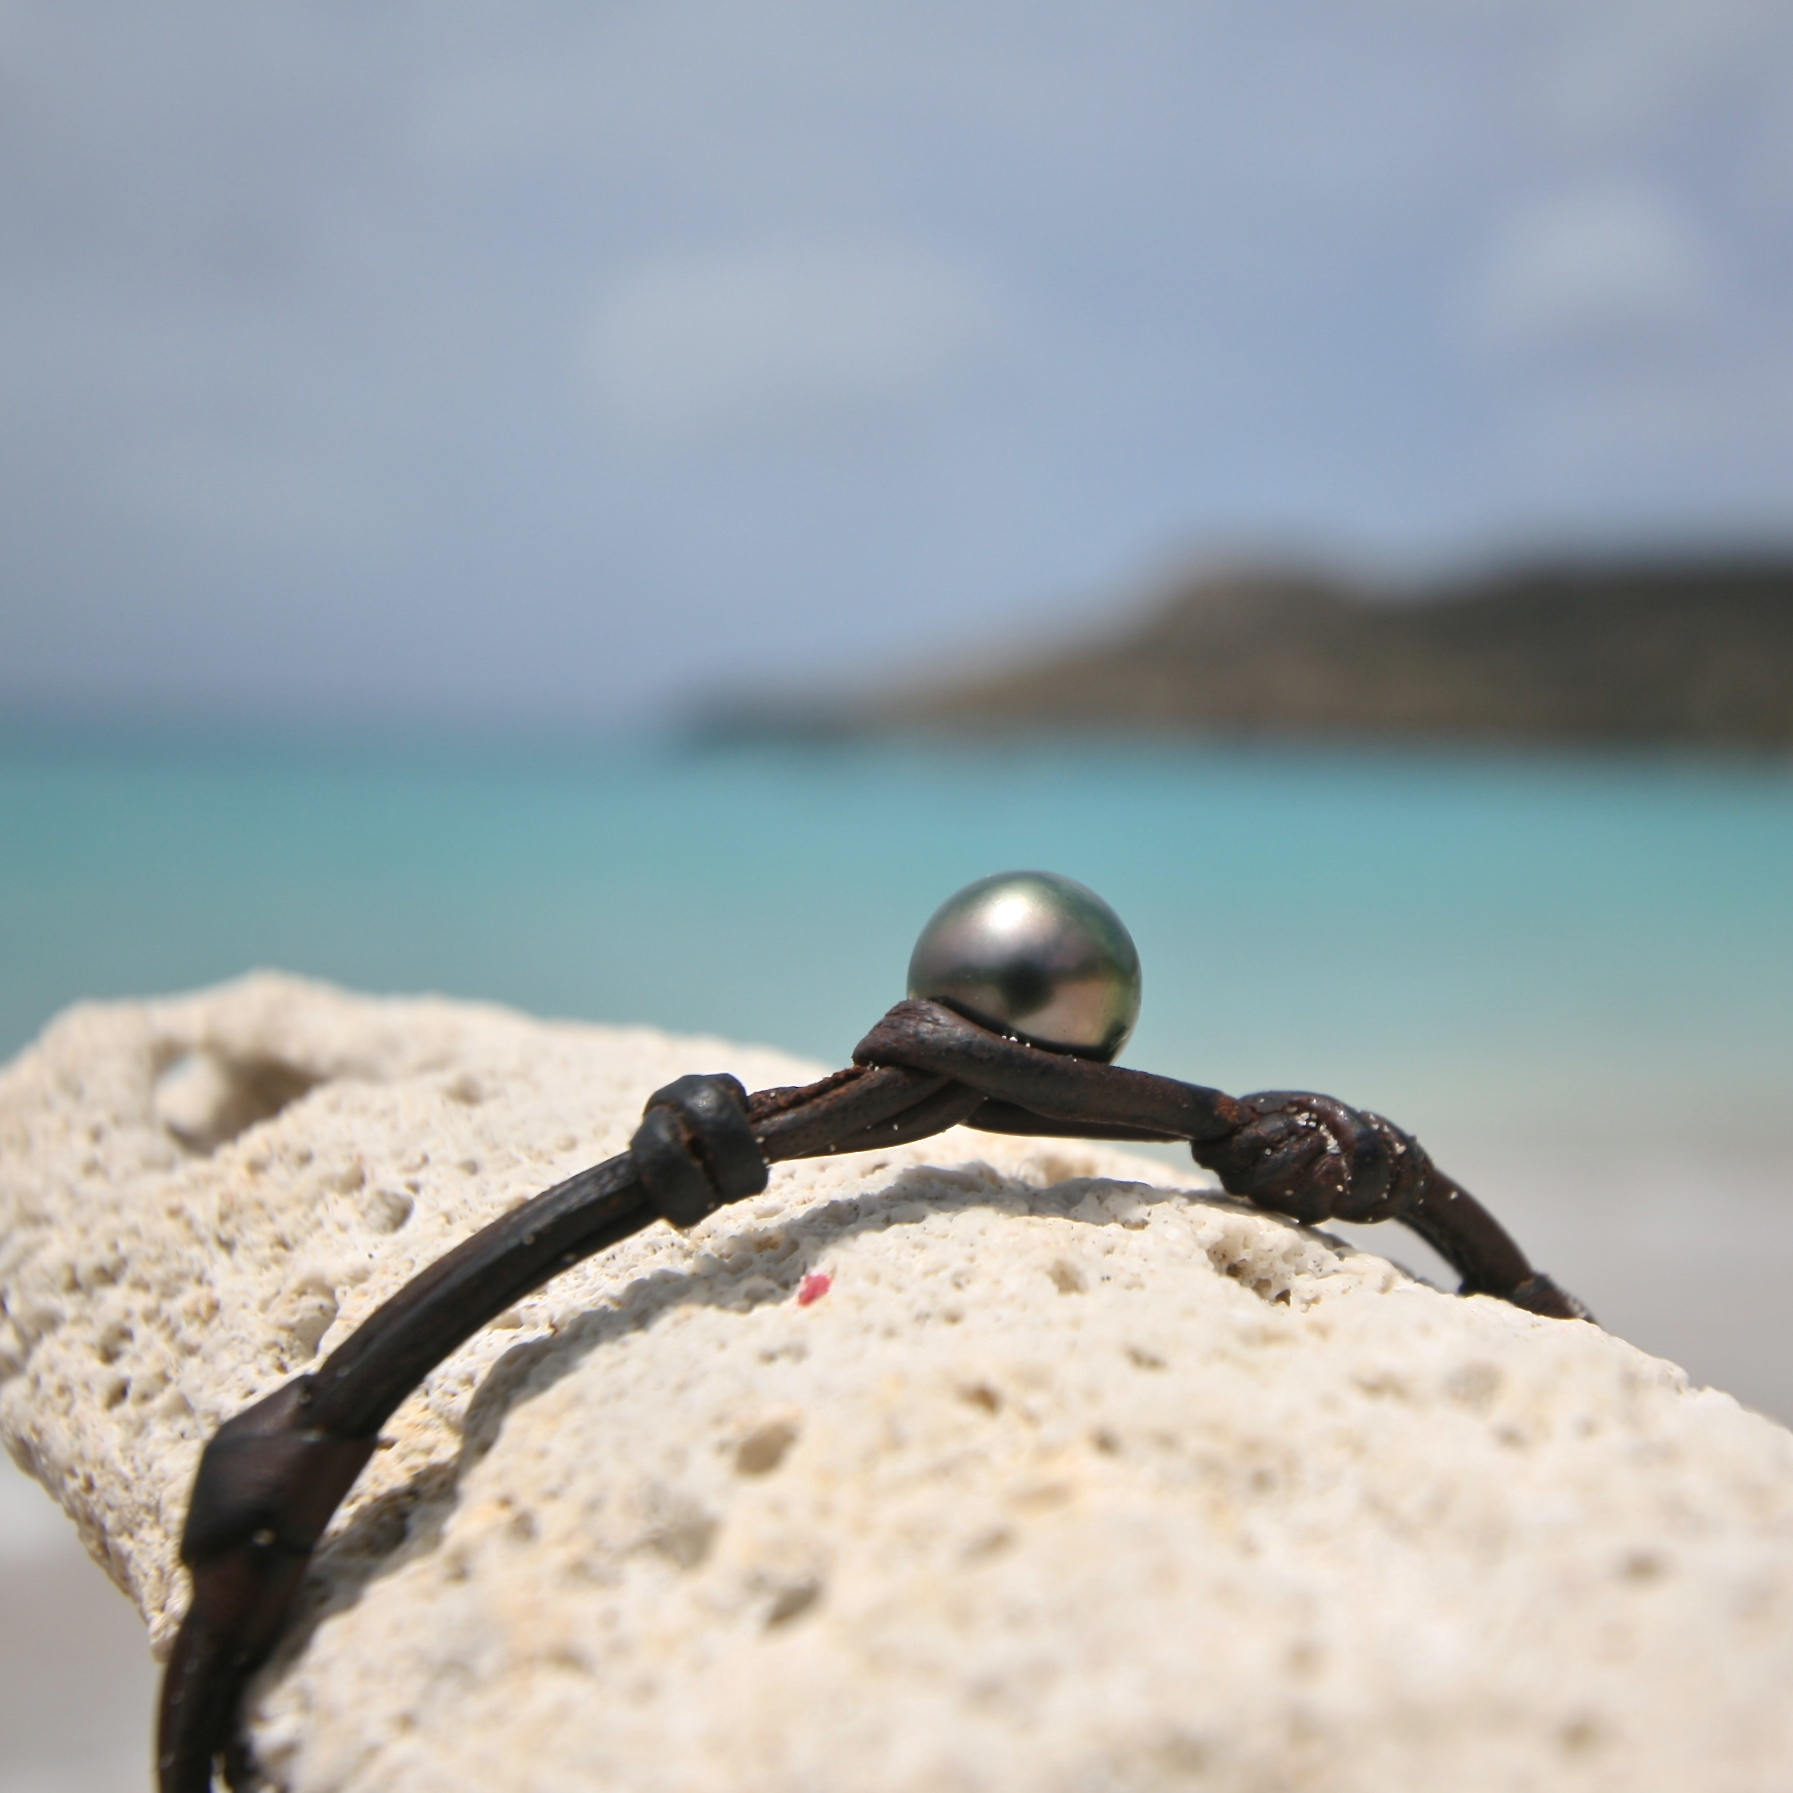 Genuine gold ingot 22k or 18k on leather, super chic luxury bracelet jewelry, Tahitian pearl clasp, St Barths signature, gold and pearl